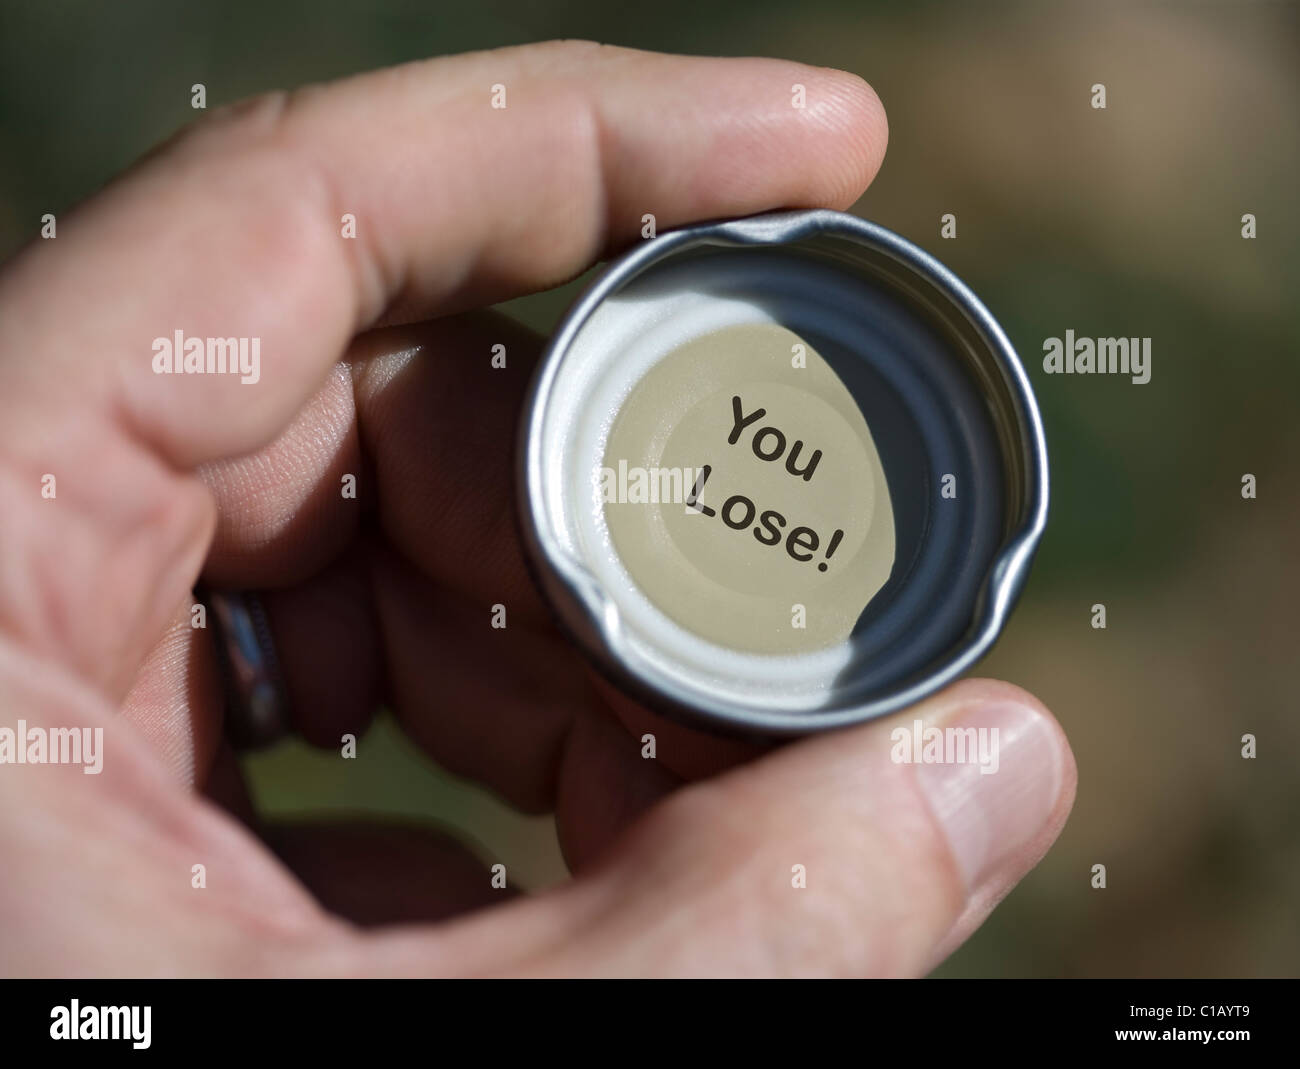 Inside of a bottle cap, with the words 'You Lose' - Stock Image